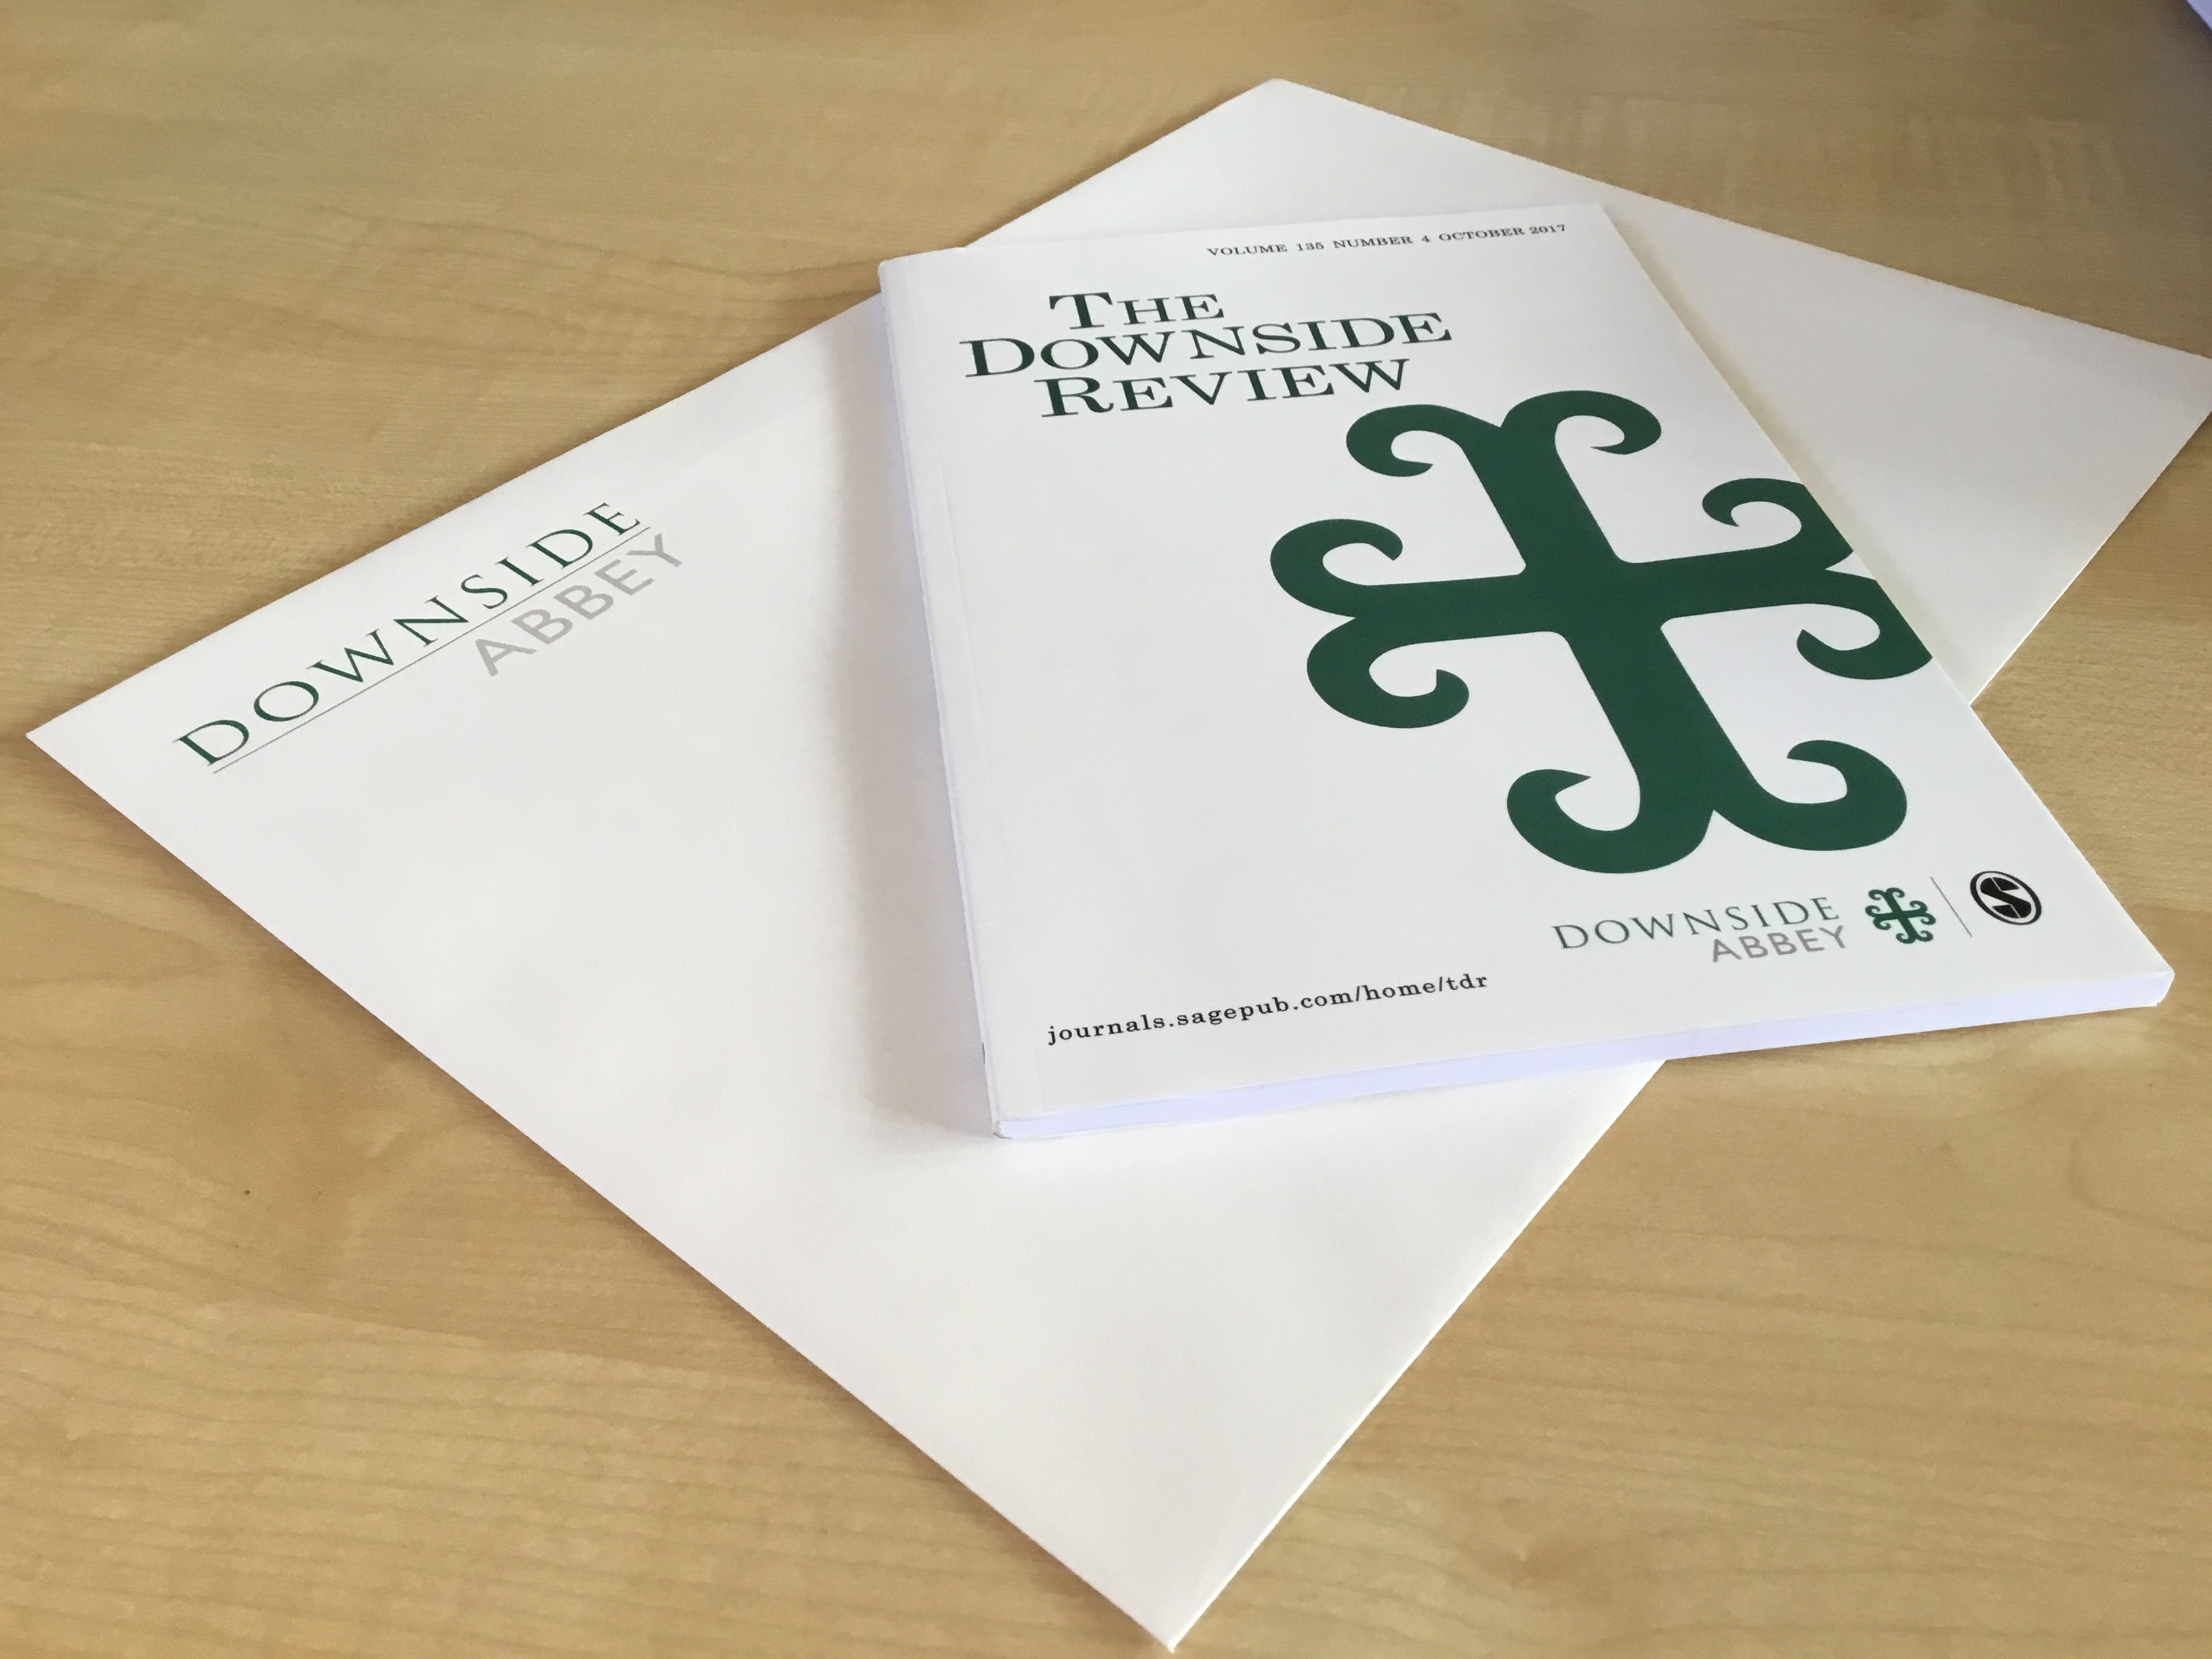 The Downside Review book